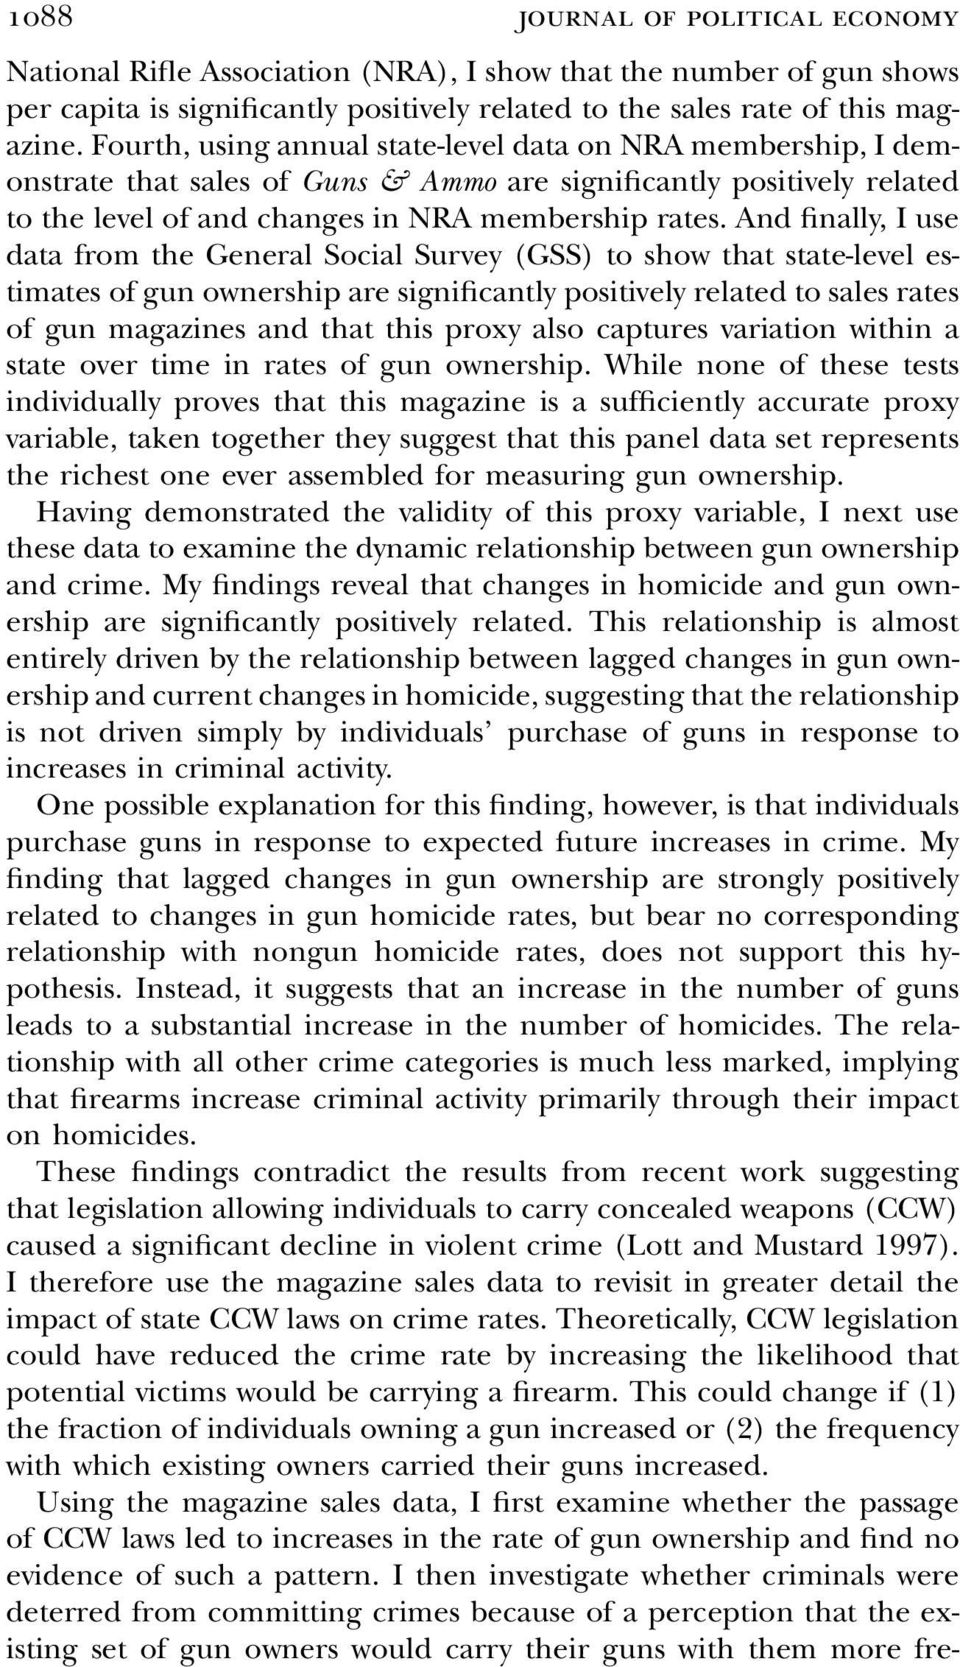 And finally, I use data from the General Social Survey (GSS) to show that state-level estimates of gun ownership are significantly positively related to sales rates of gun magazines and that this